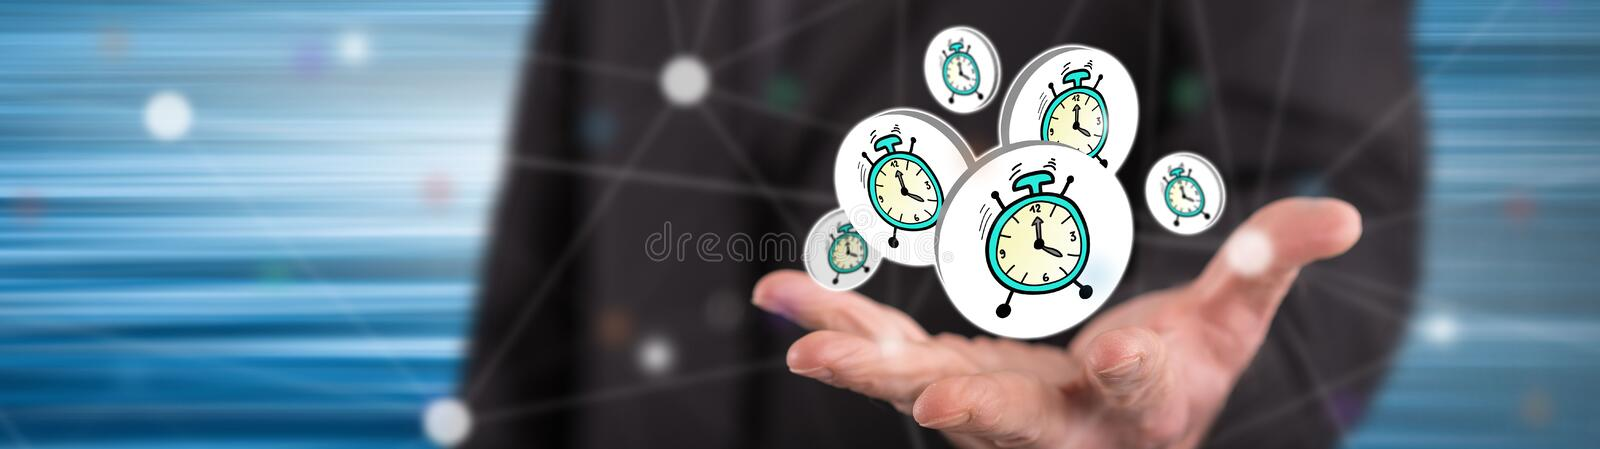 Concept of time royalty free stock photos